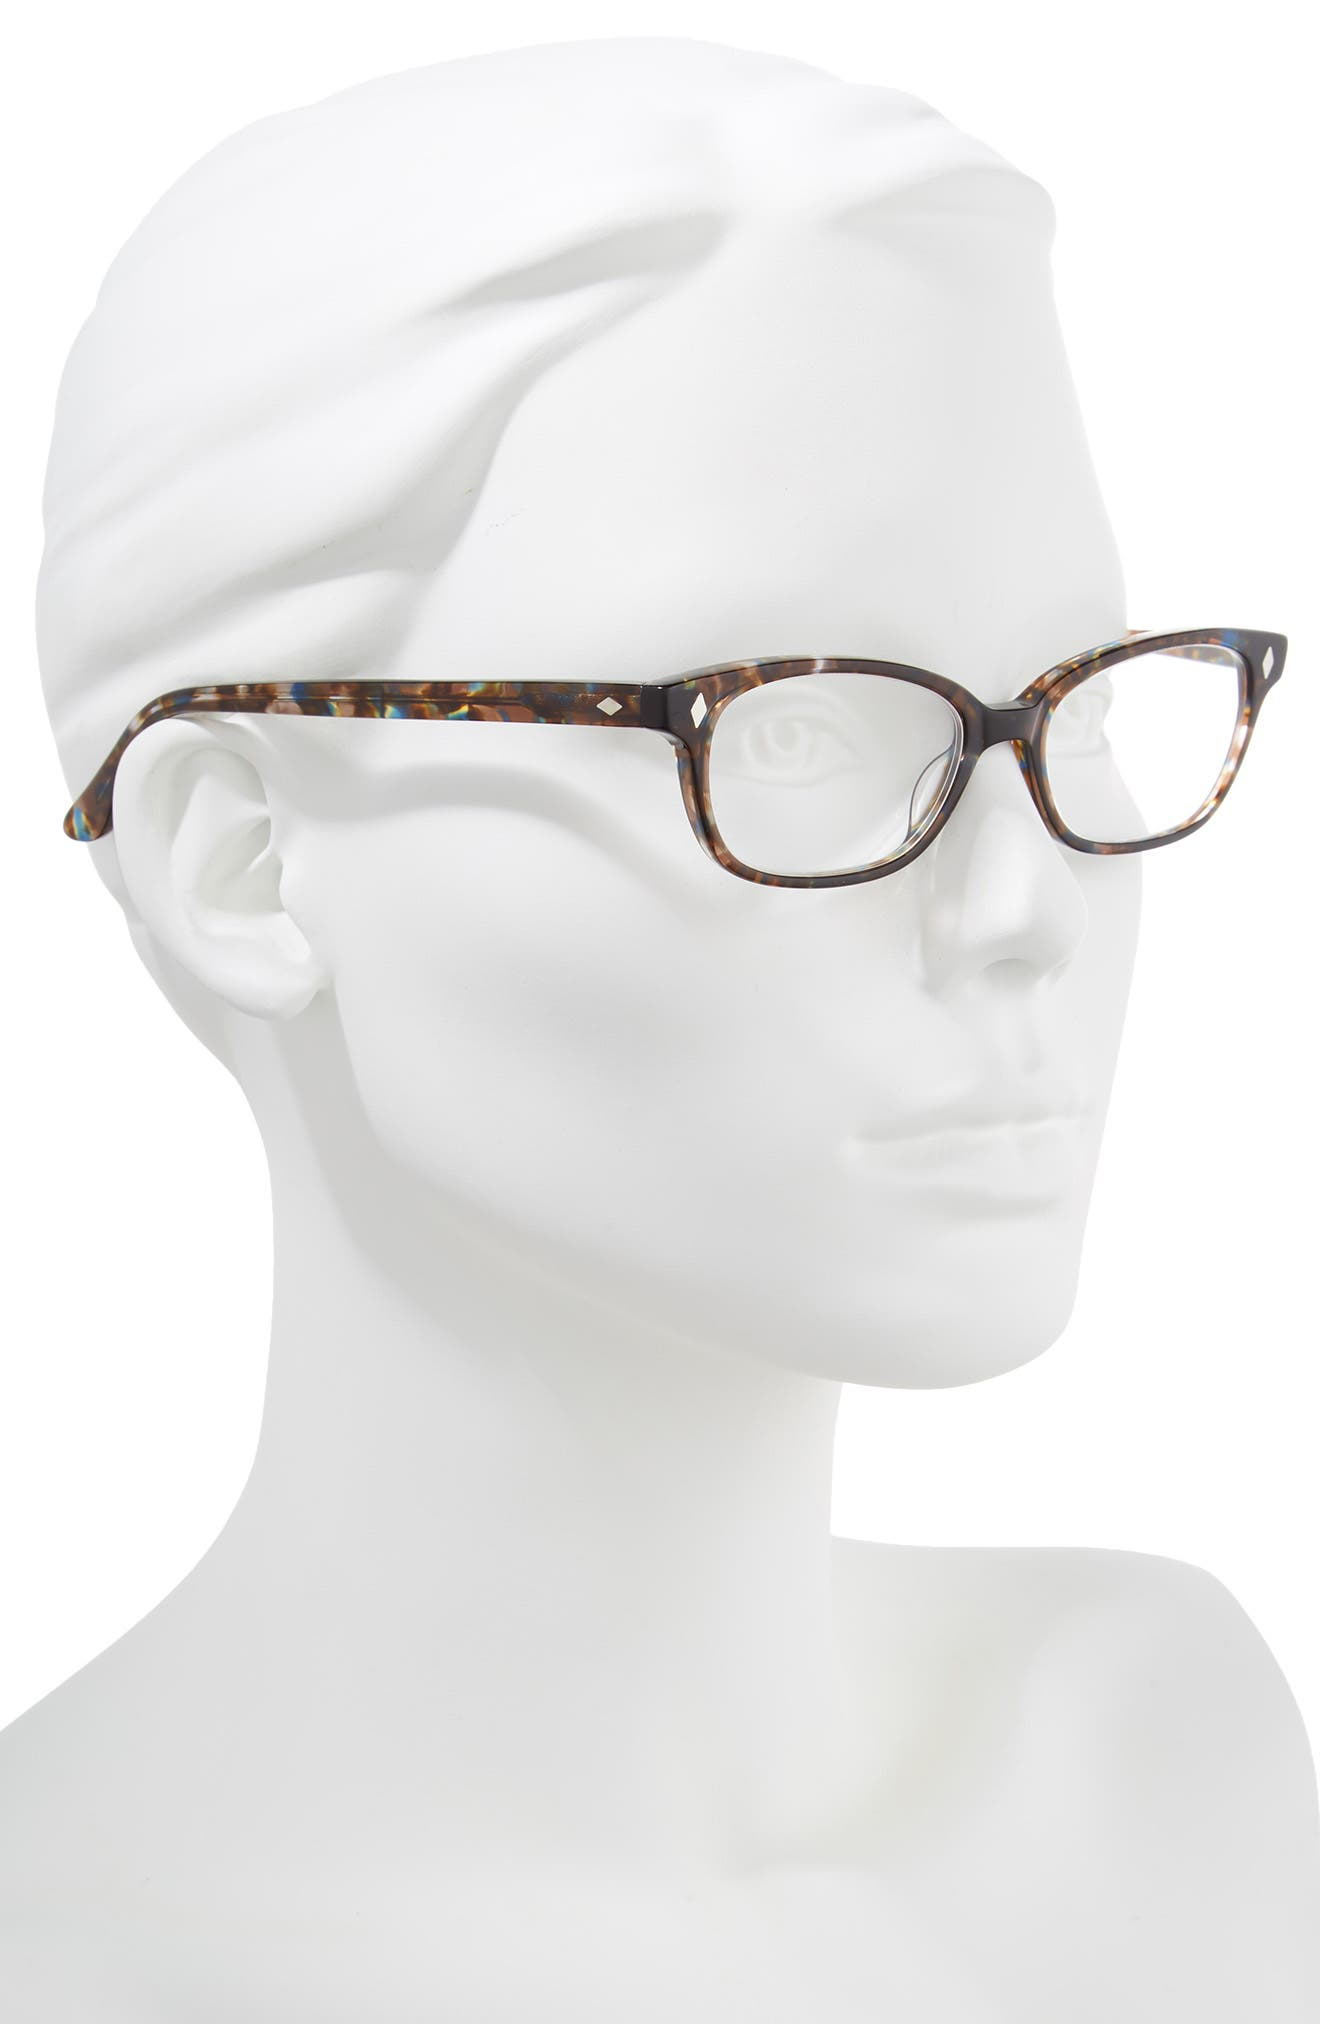 'Cyd' 50mm Reading Glasses,                             Alternate thumbnail 2, color,                             Transparent Brown Marble